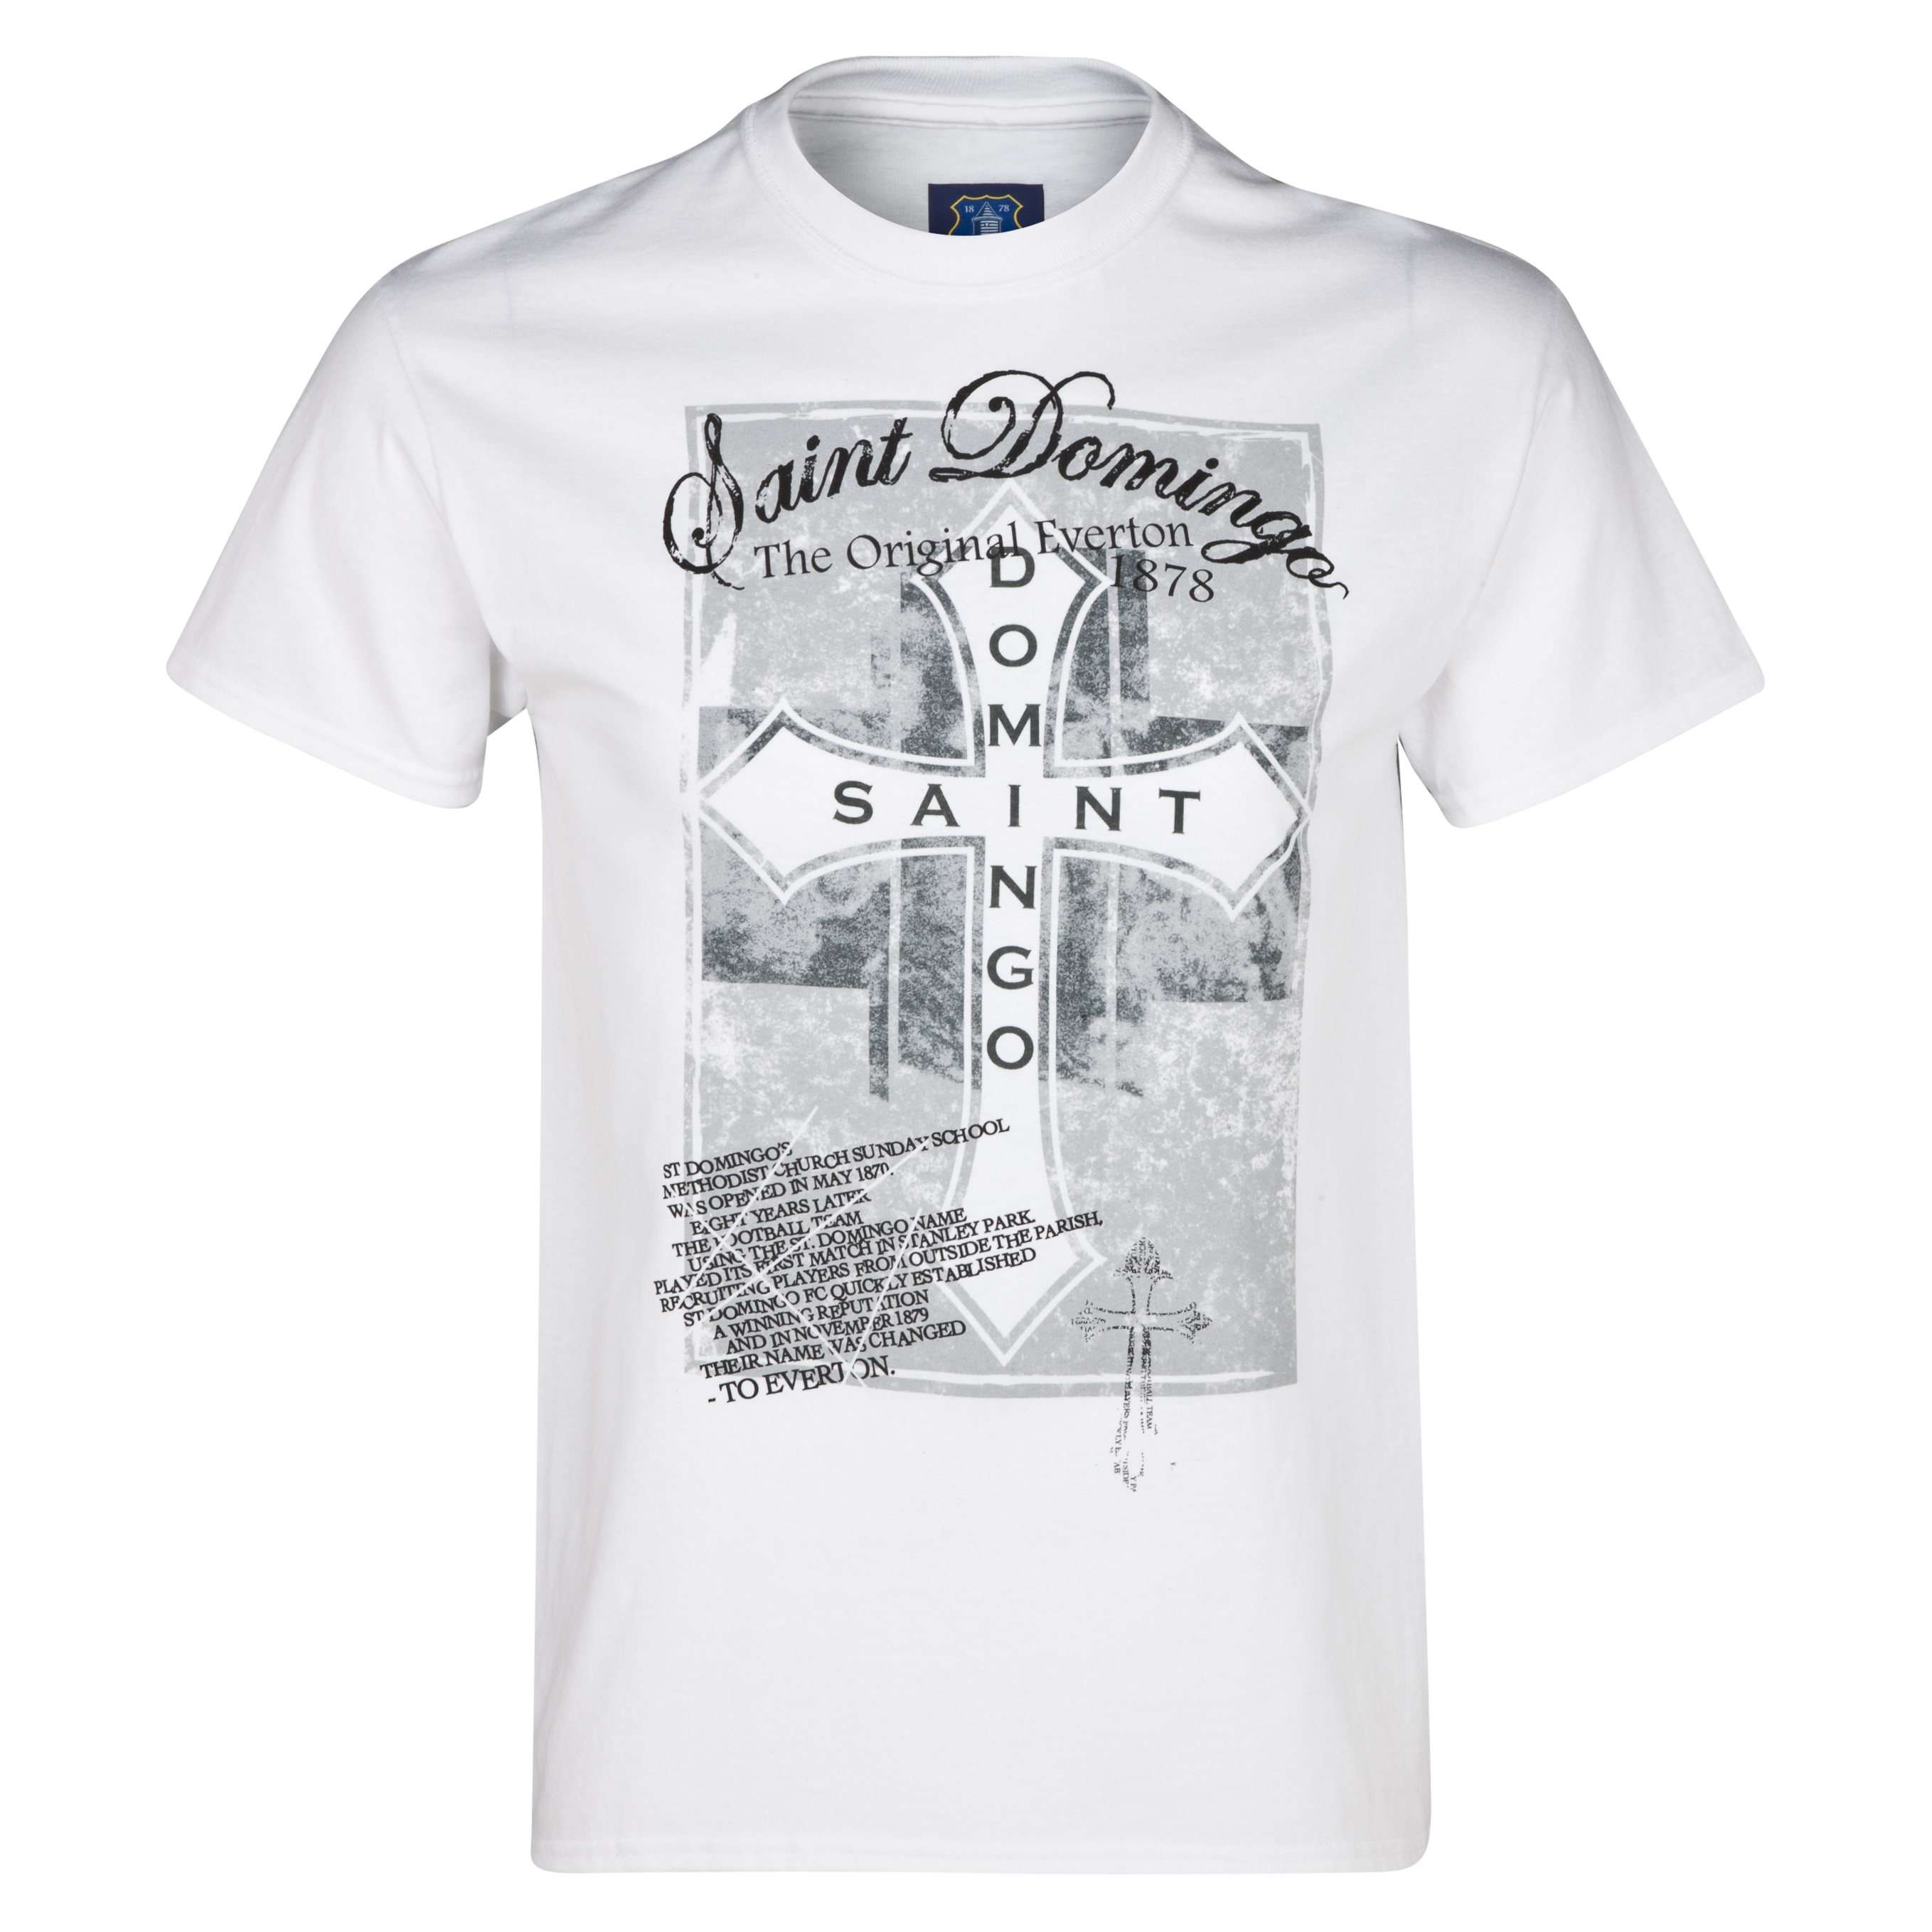 Everton 2for20 Saint Domingo T-Shirt White